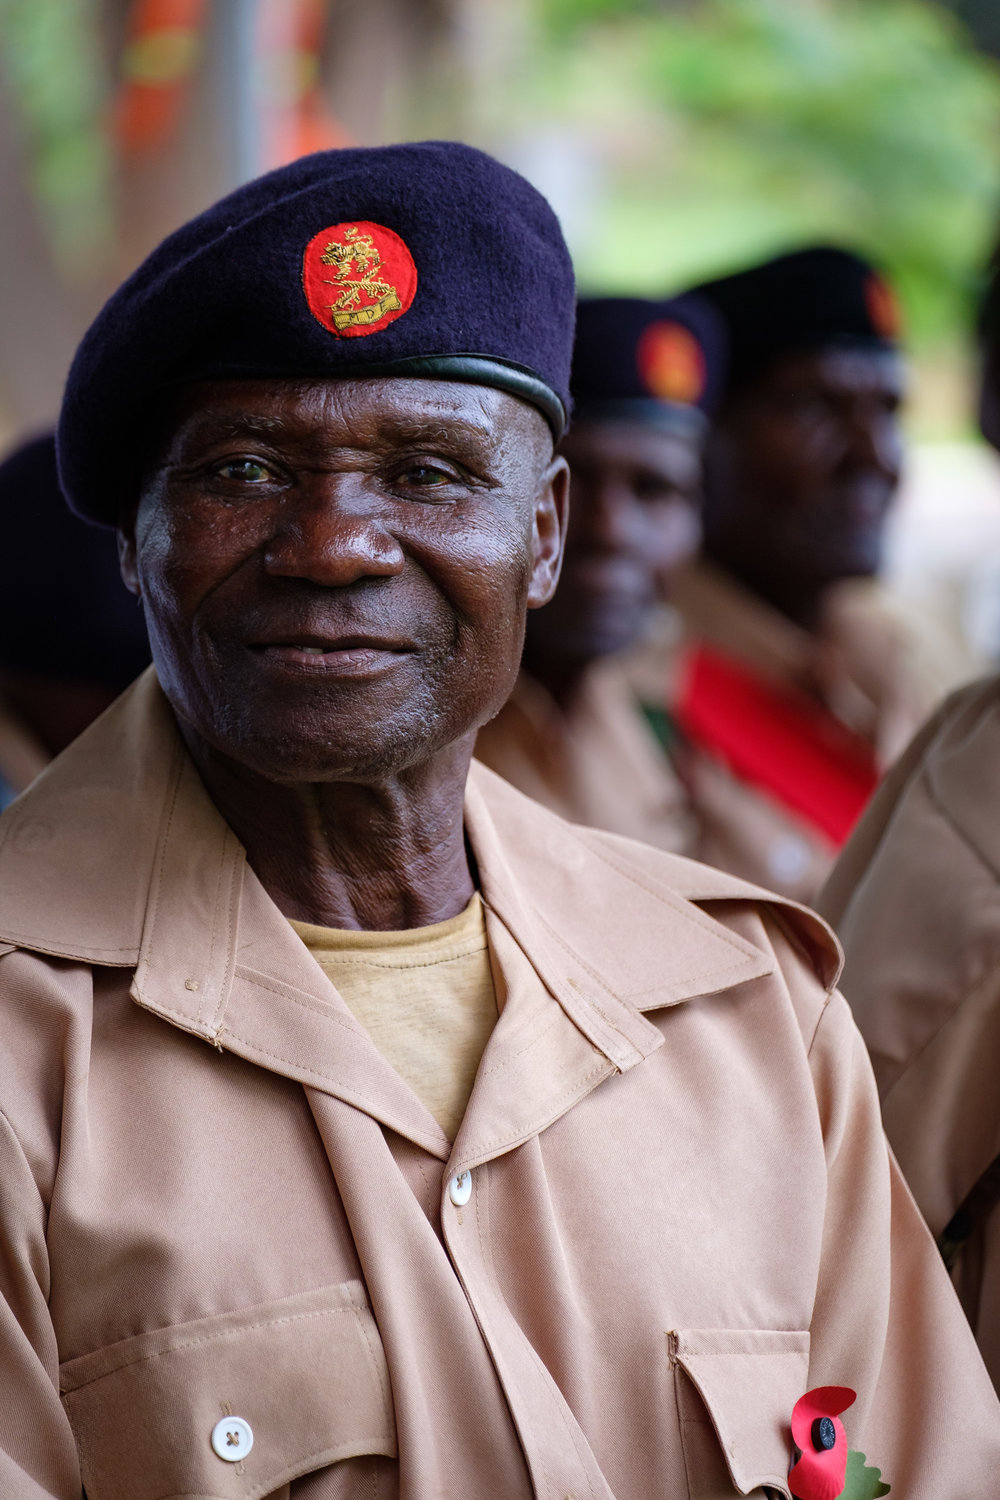 One of the World War II veterans. Those eyes may have witnessed Axis troops surrounding him in Moyale, or stared down a Japanese Banzai charge in Berma.